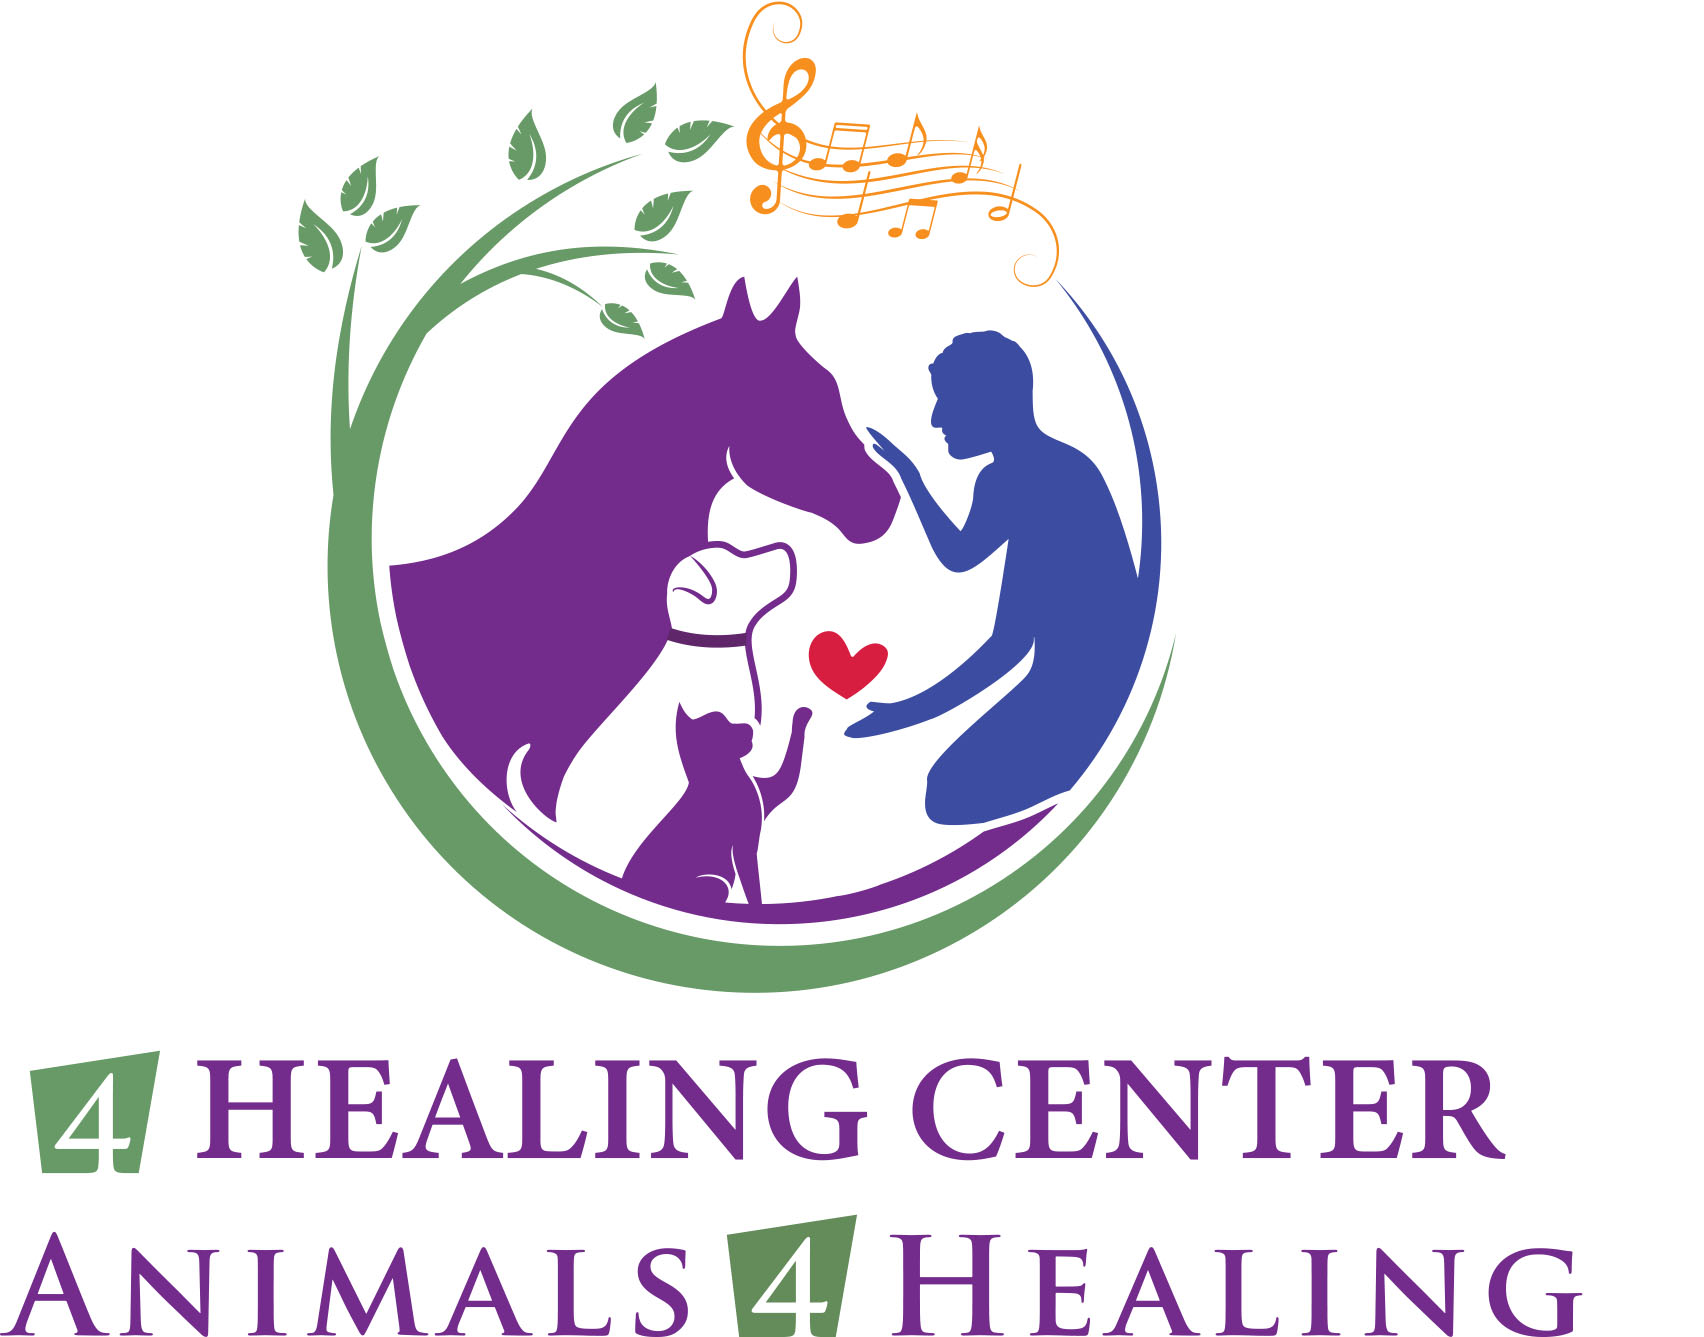 Utah Healing Center is now 4 Healing Center